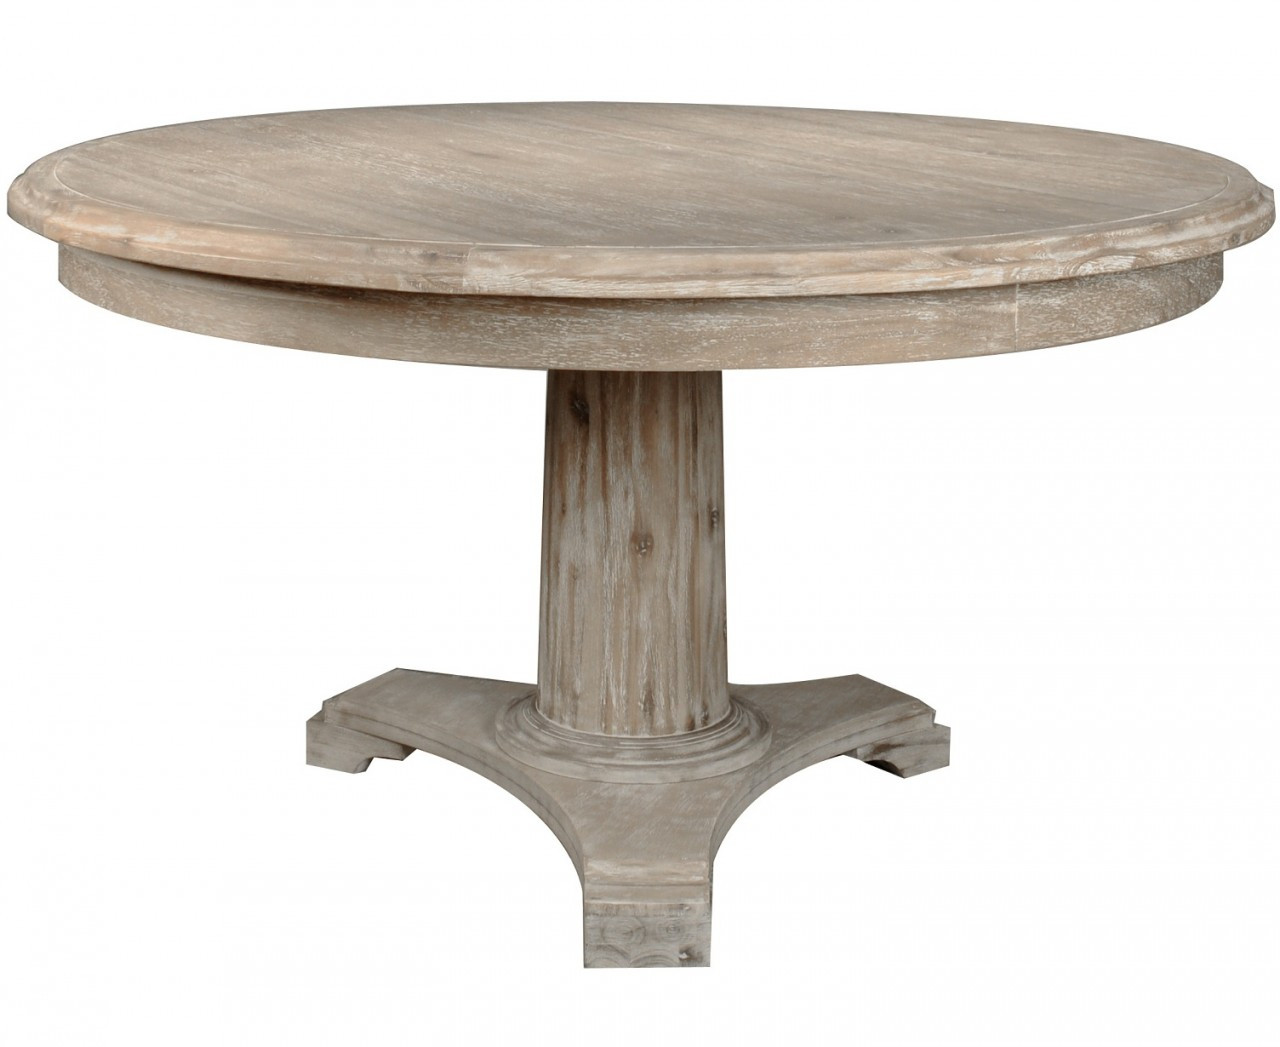 54 round dining table Belmont Round Dining Table 54